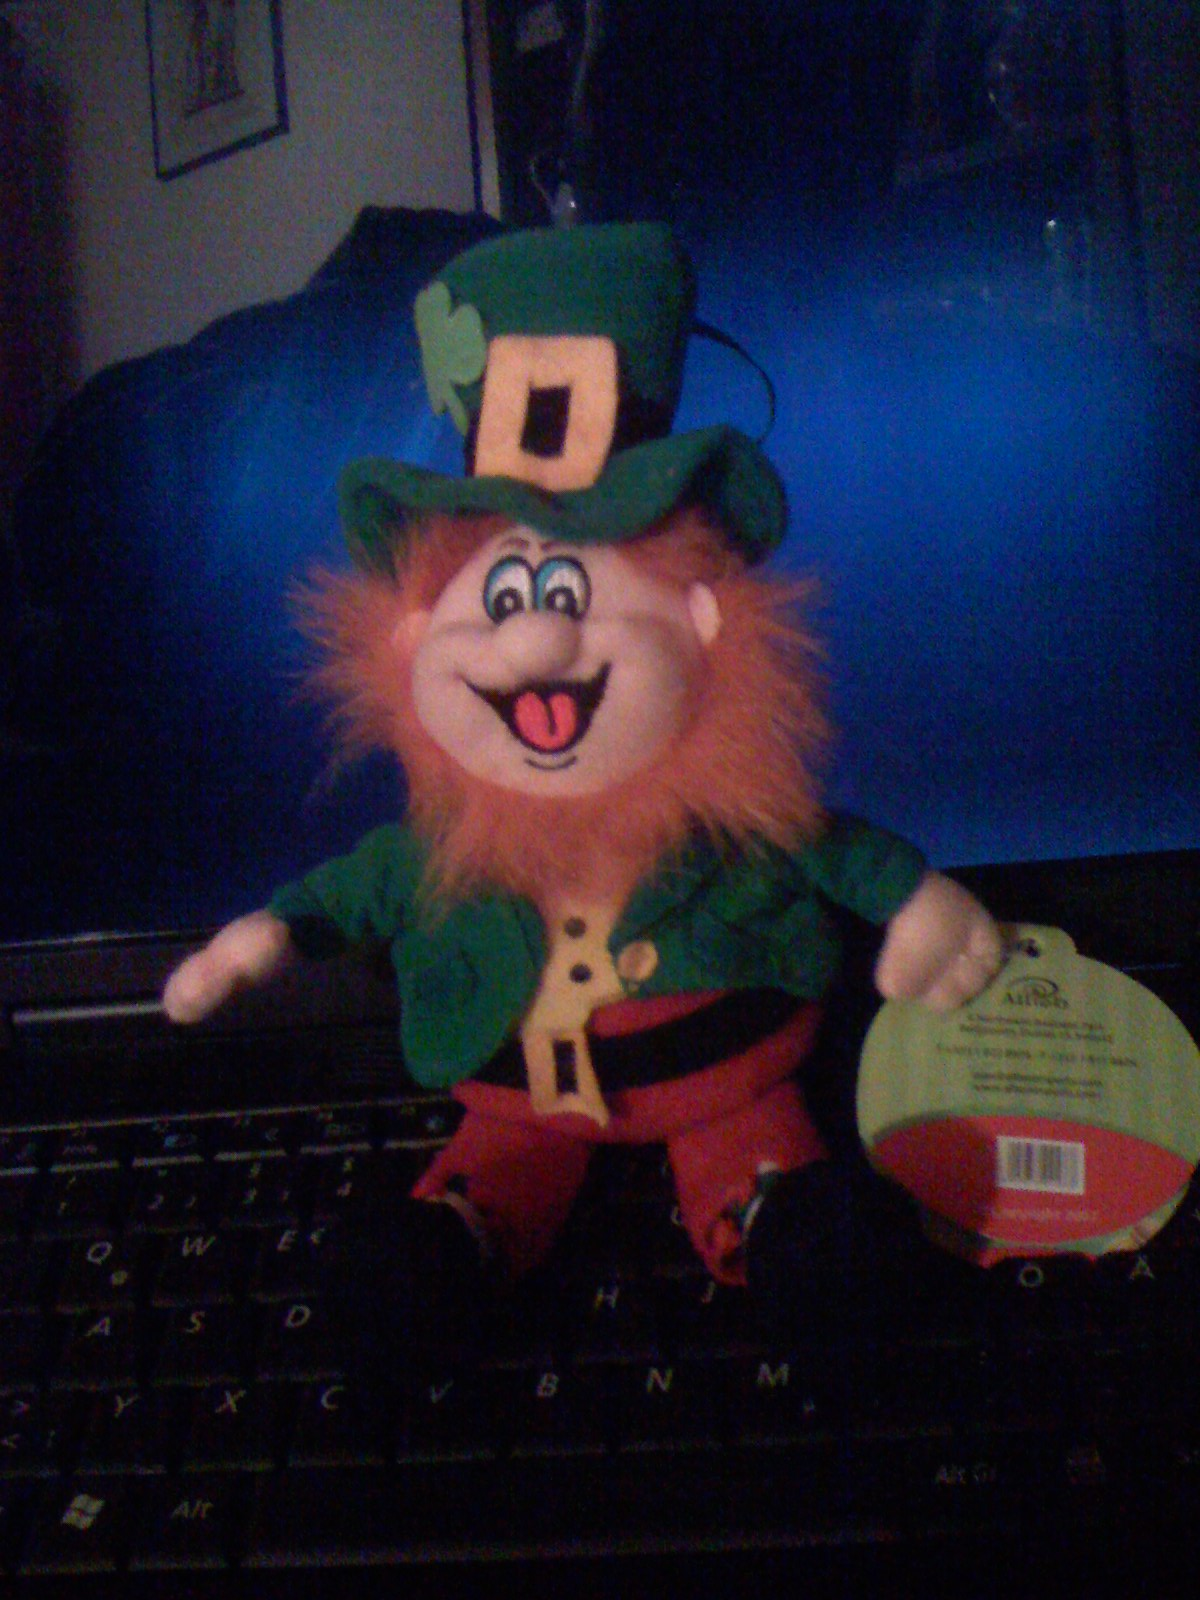 Finnegan the king of the leprechauns